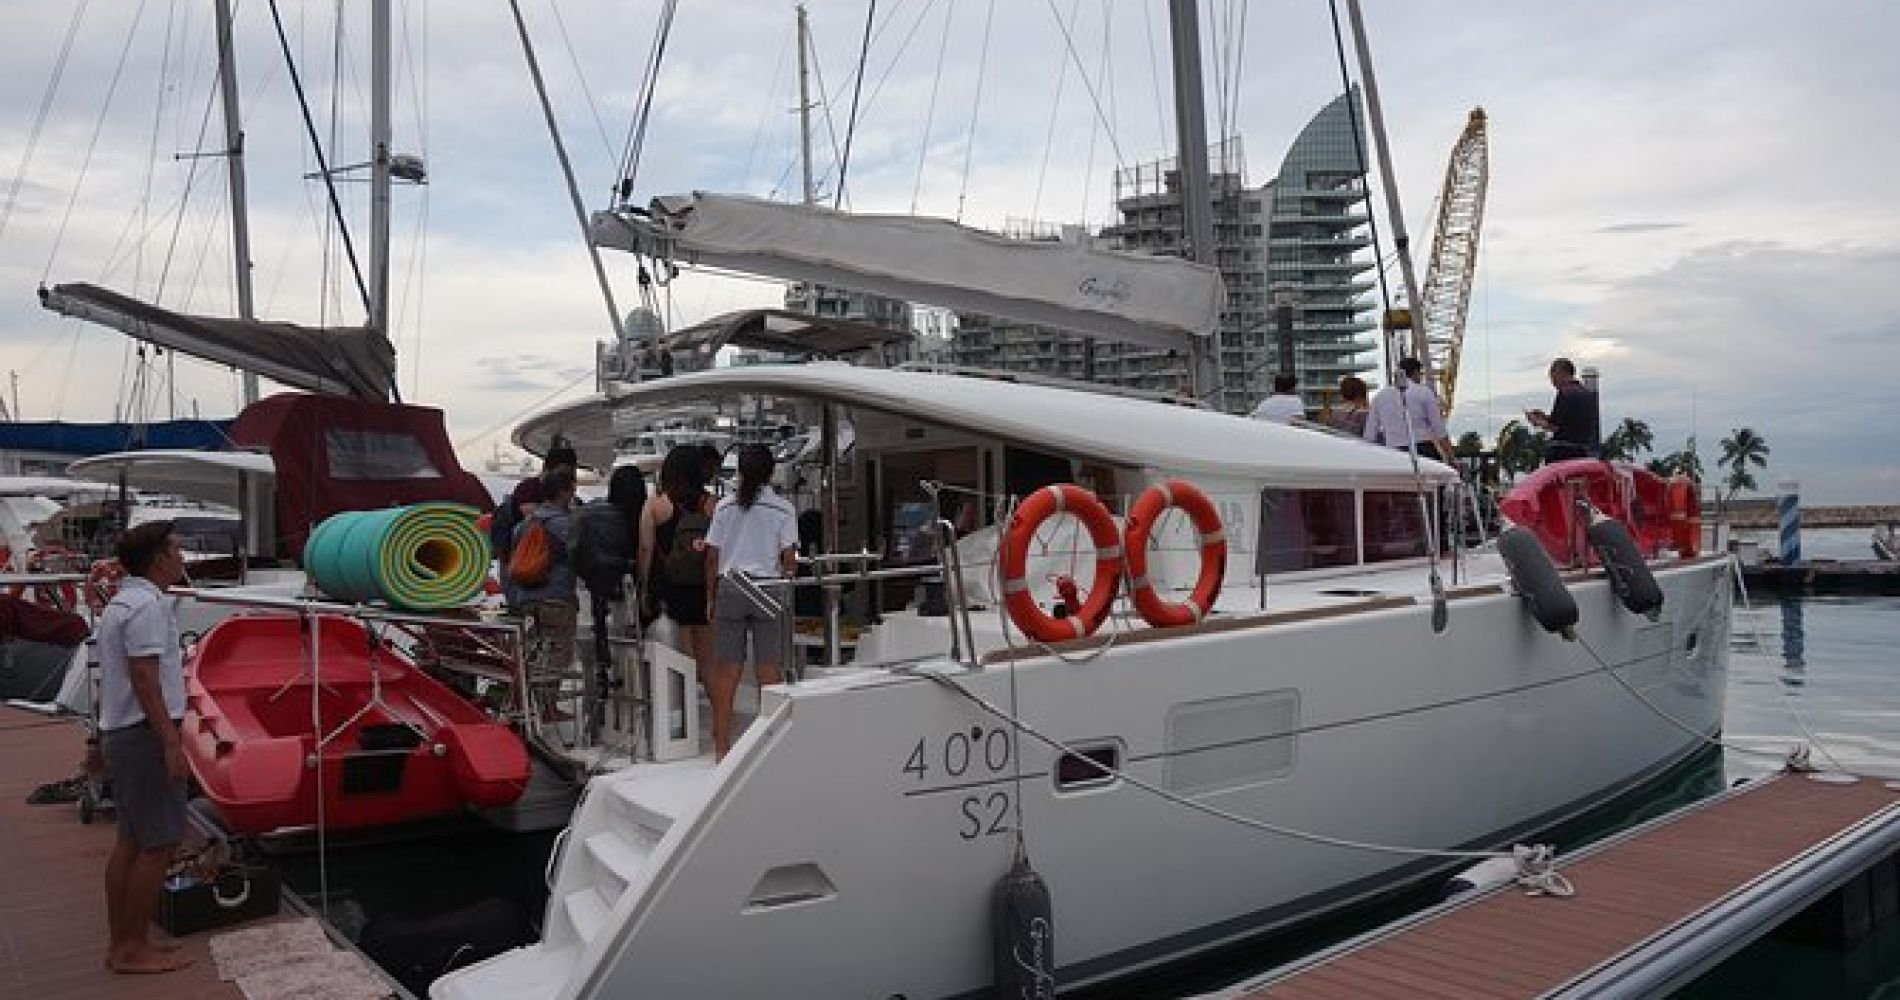 Singapore Sunset Cruise On A Luxury Catamaran